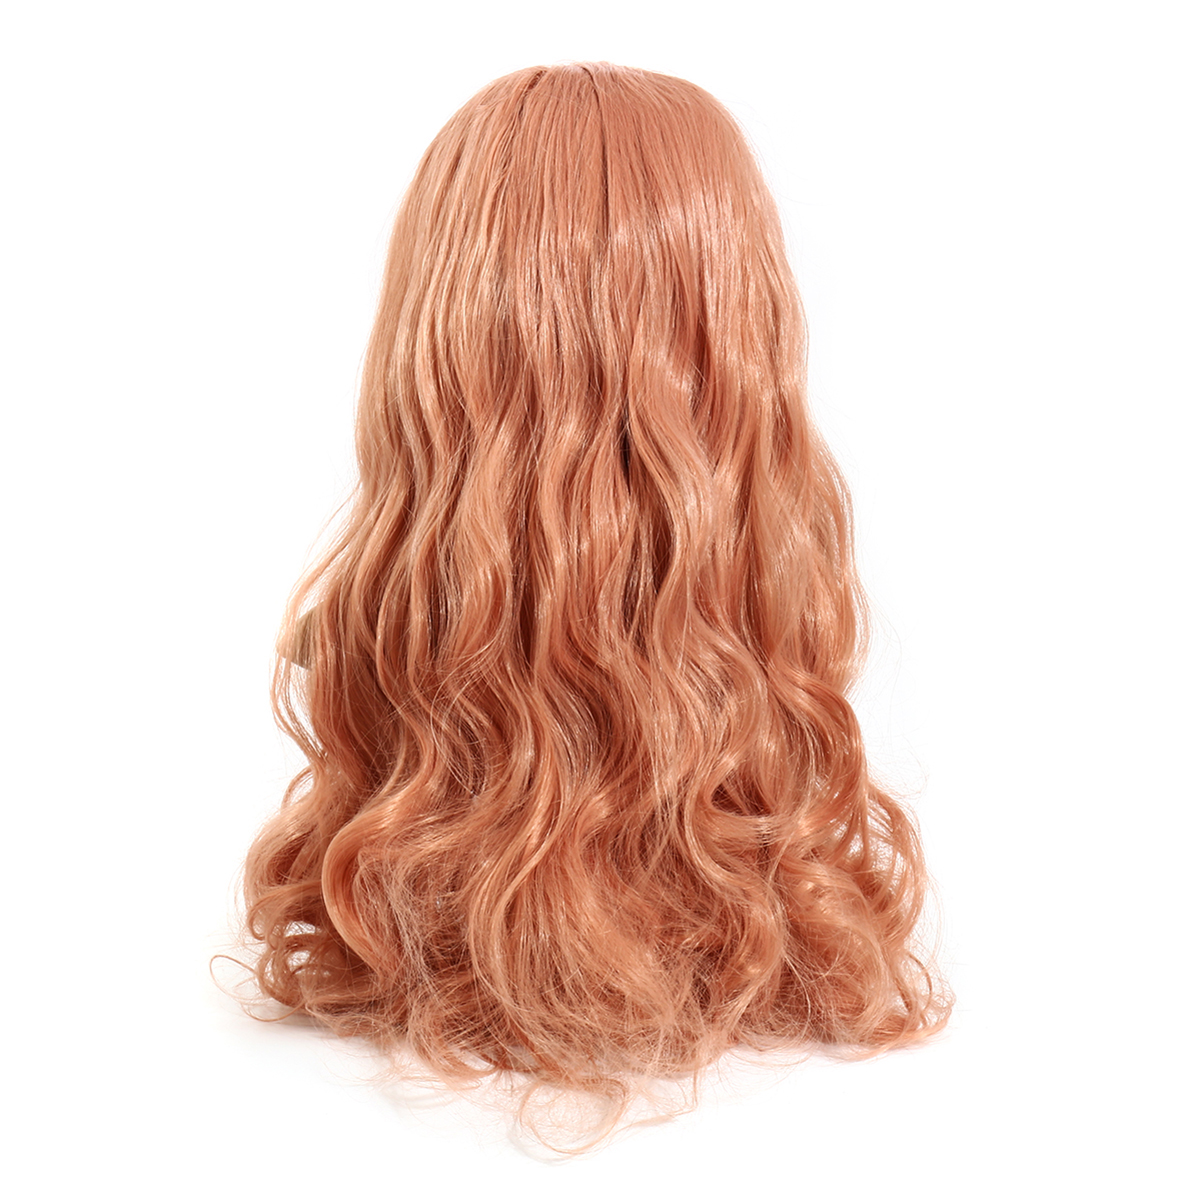 24/26 inches Synthetic Hair Long Wavy Wig